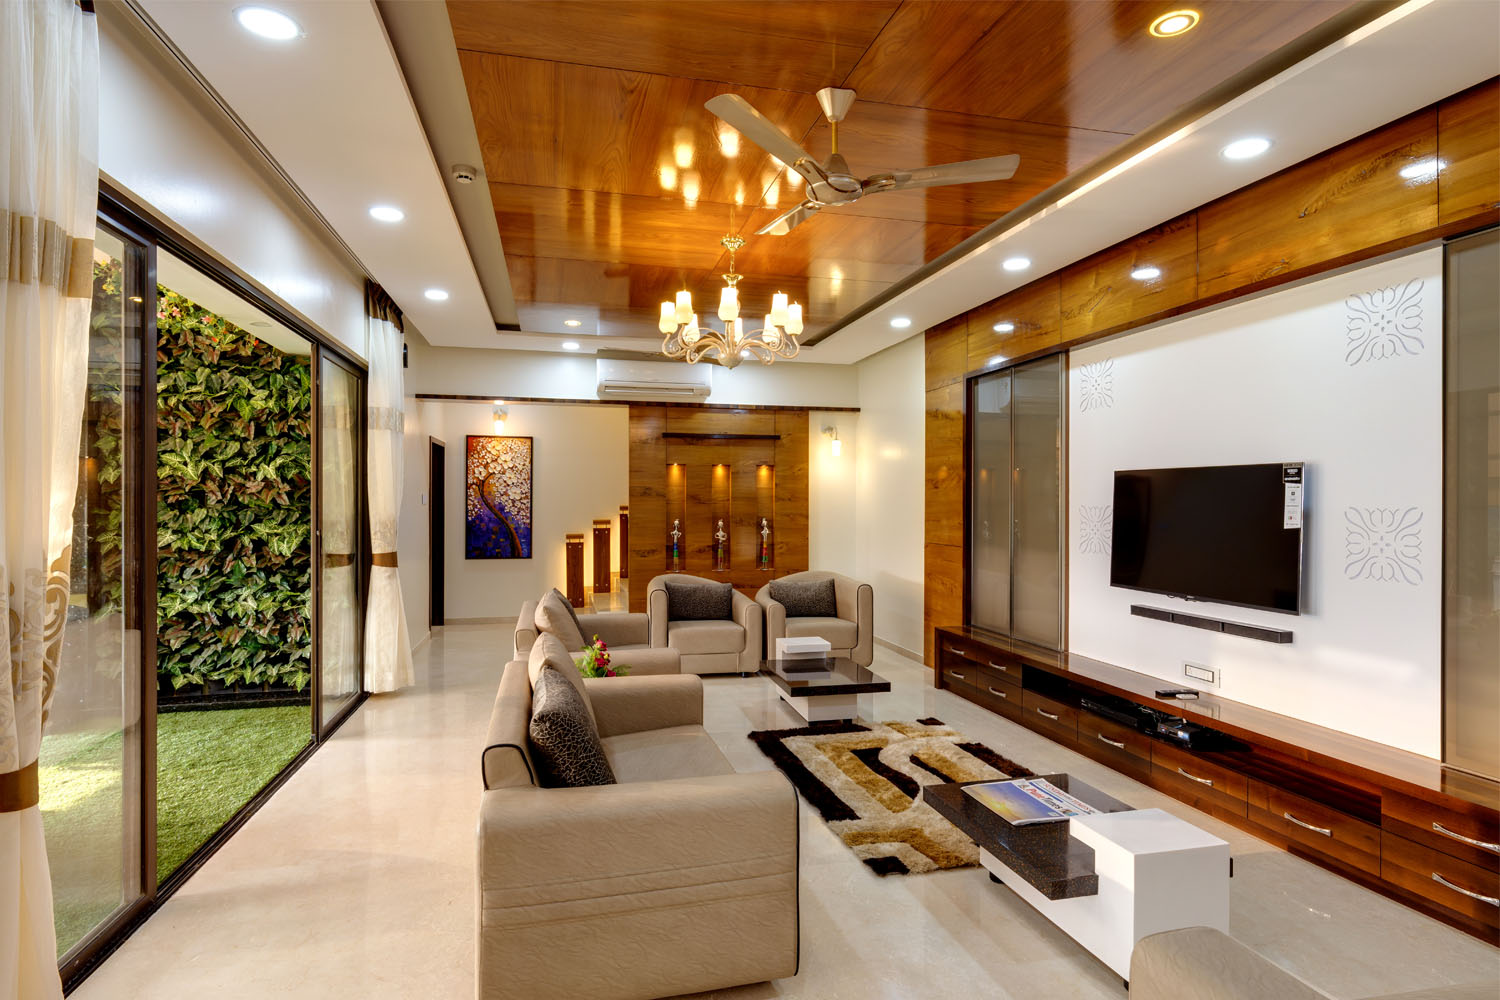 Best interior designer pune nerlekar interior designing for Best house interior designs in india